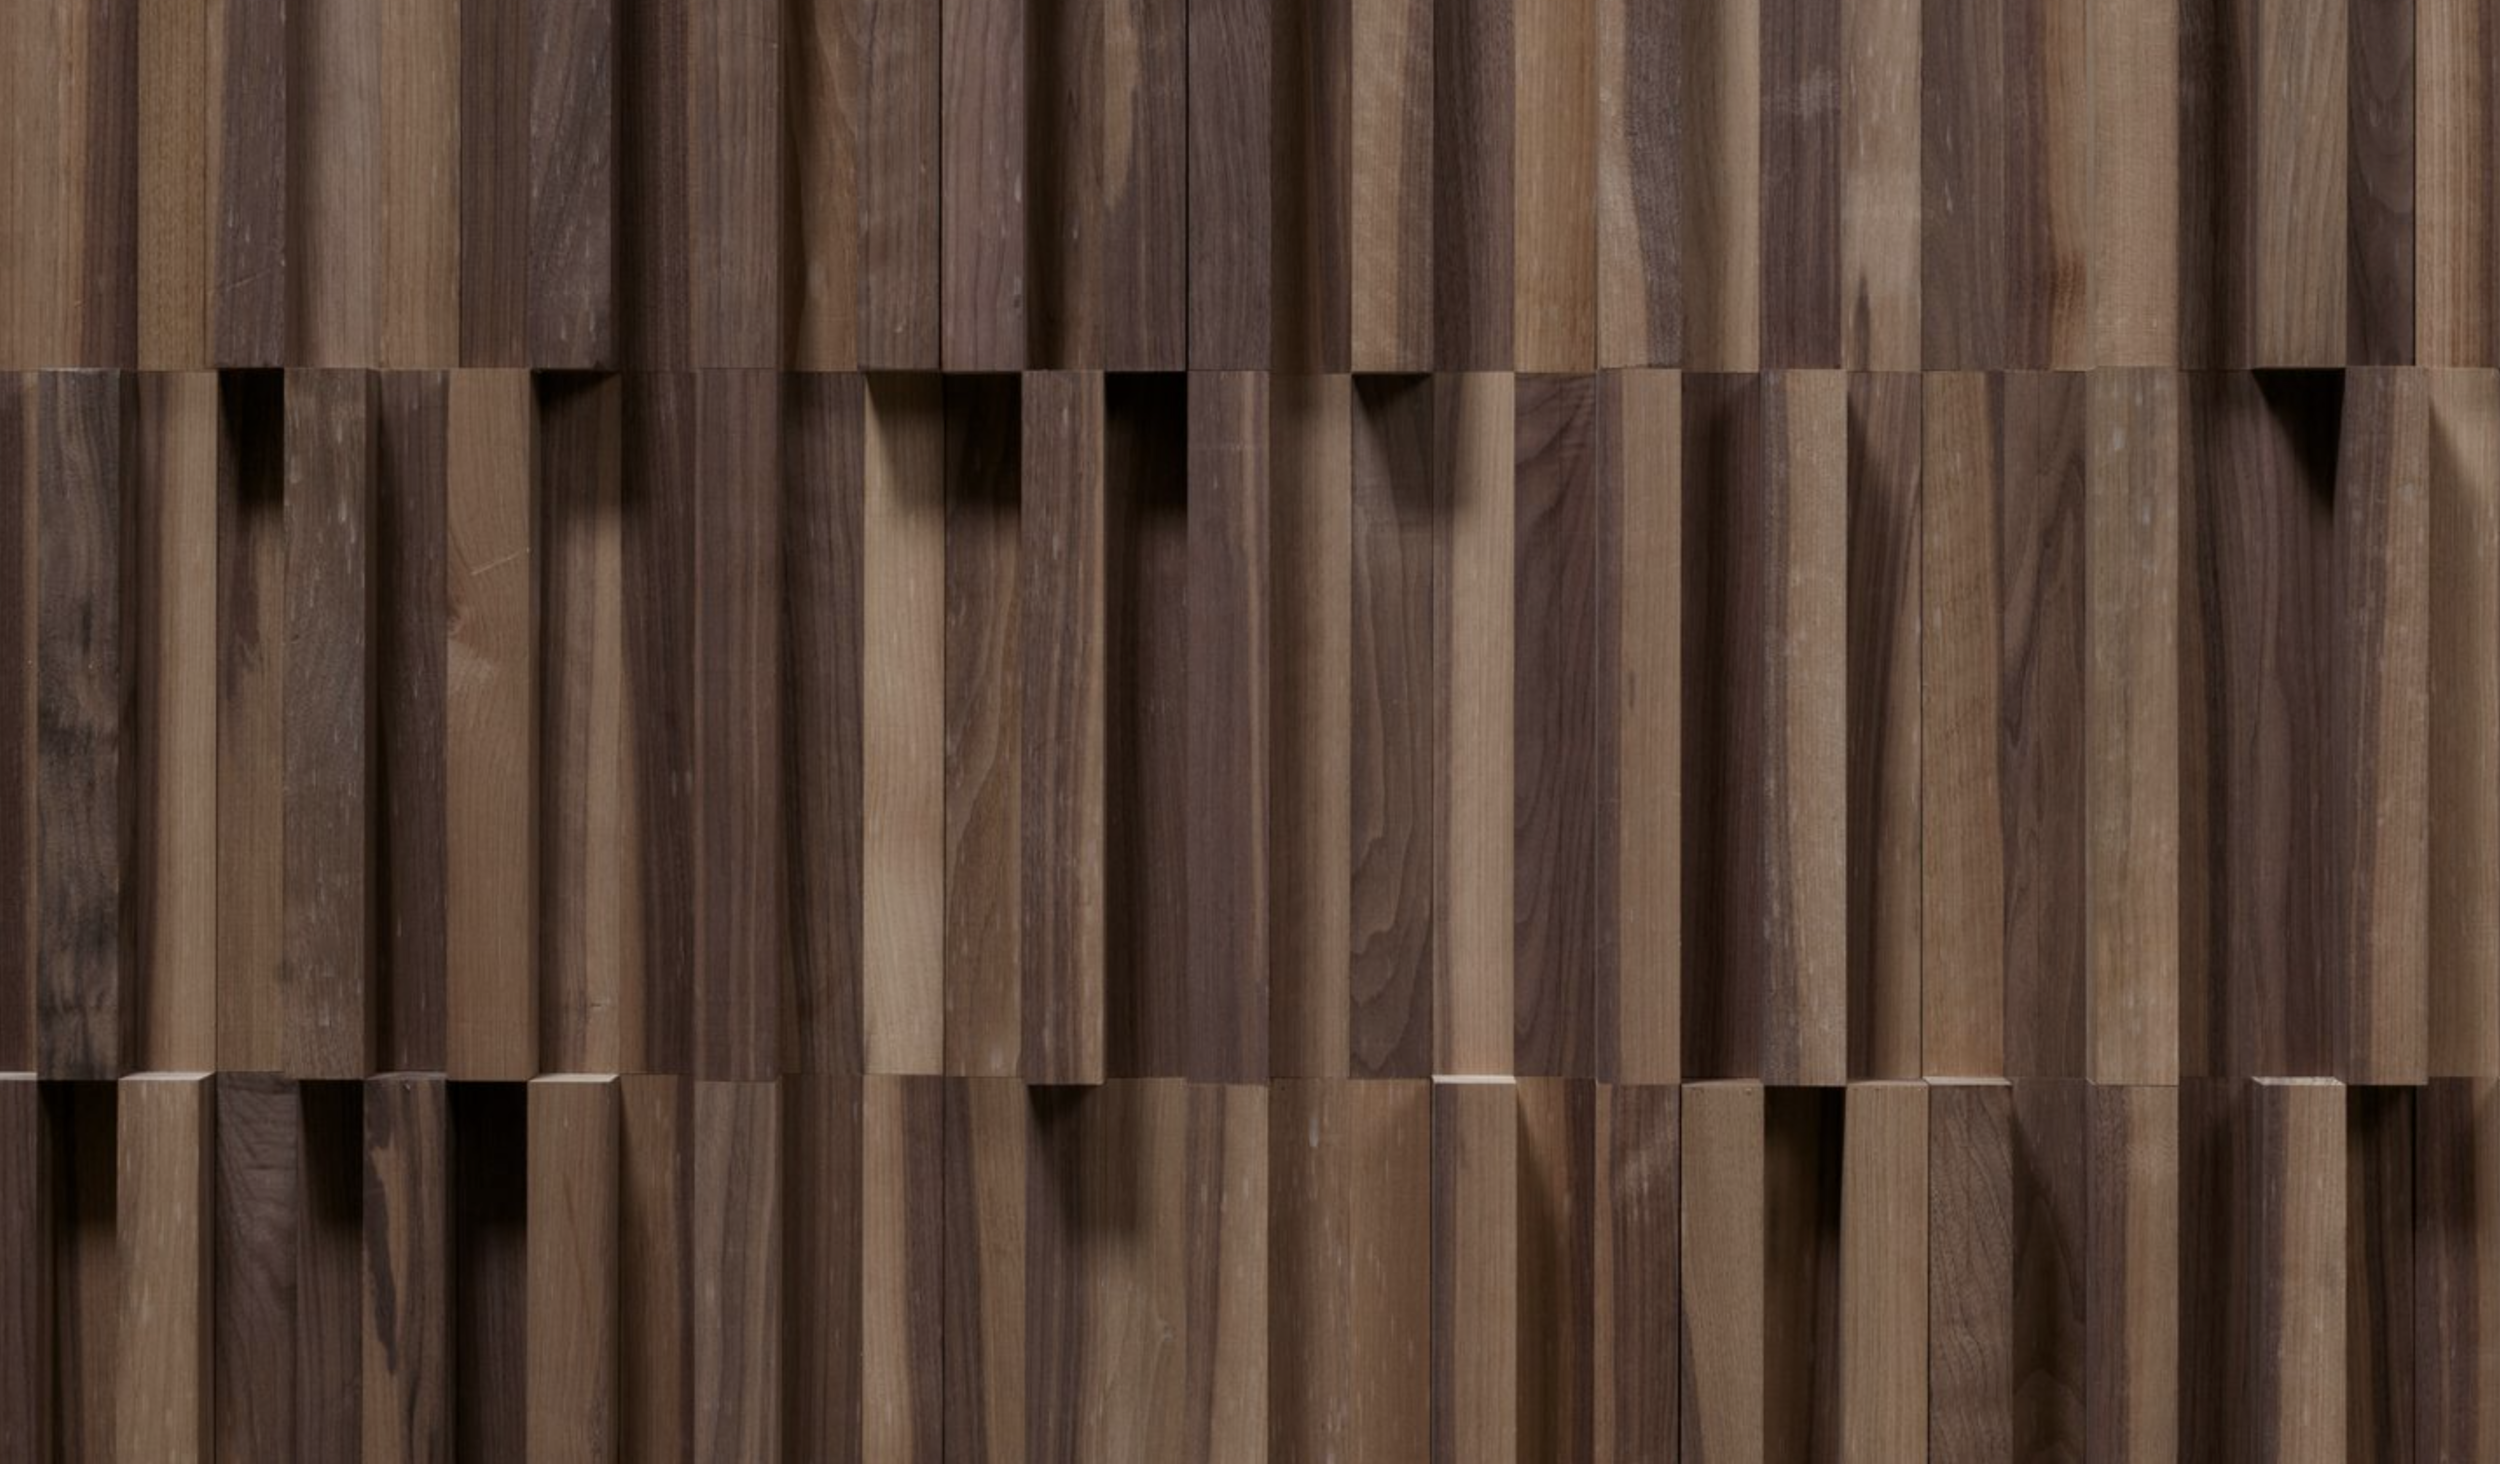 jeb_architectural_finishes_wood_wonderwall_studio-note-01.png